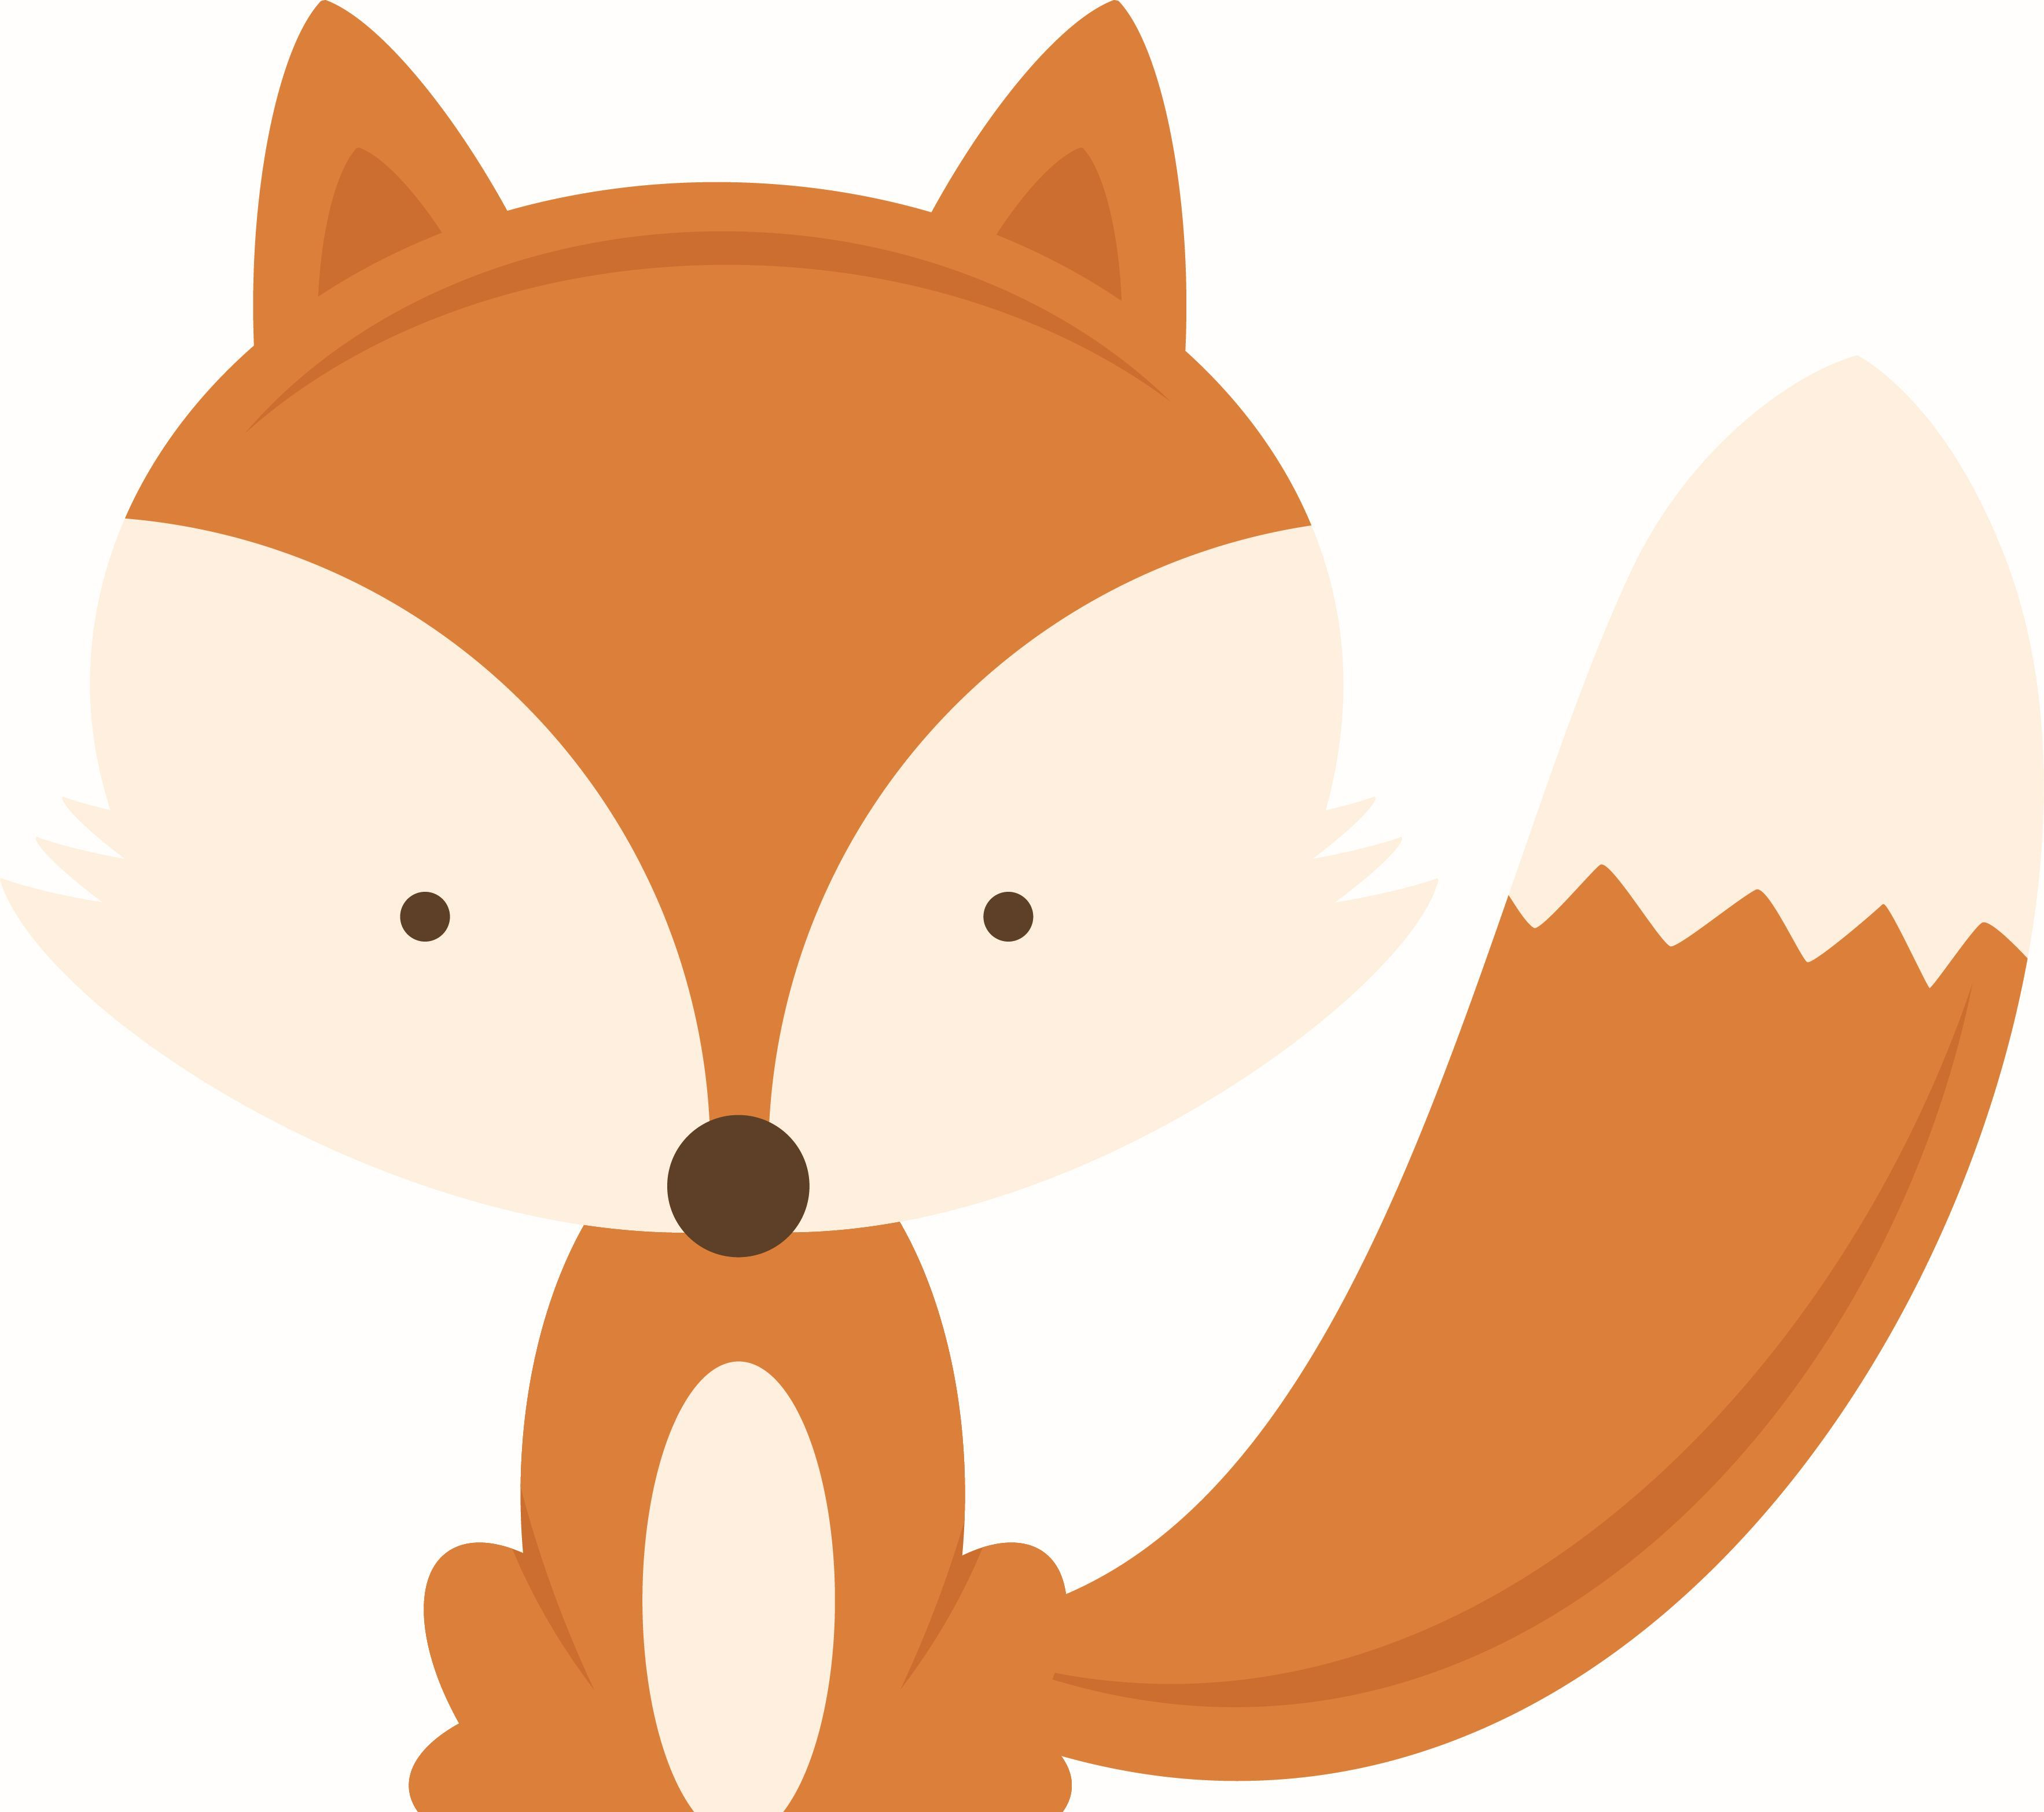 Woodland fox clipart free vector library library Pin by Jackie Davis on wooddland creatures | Baby cartoon ... vector library library